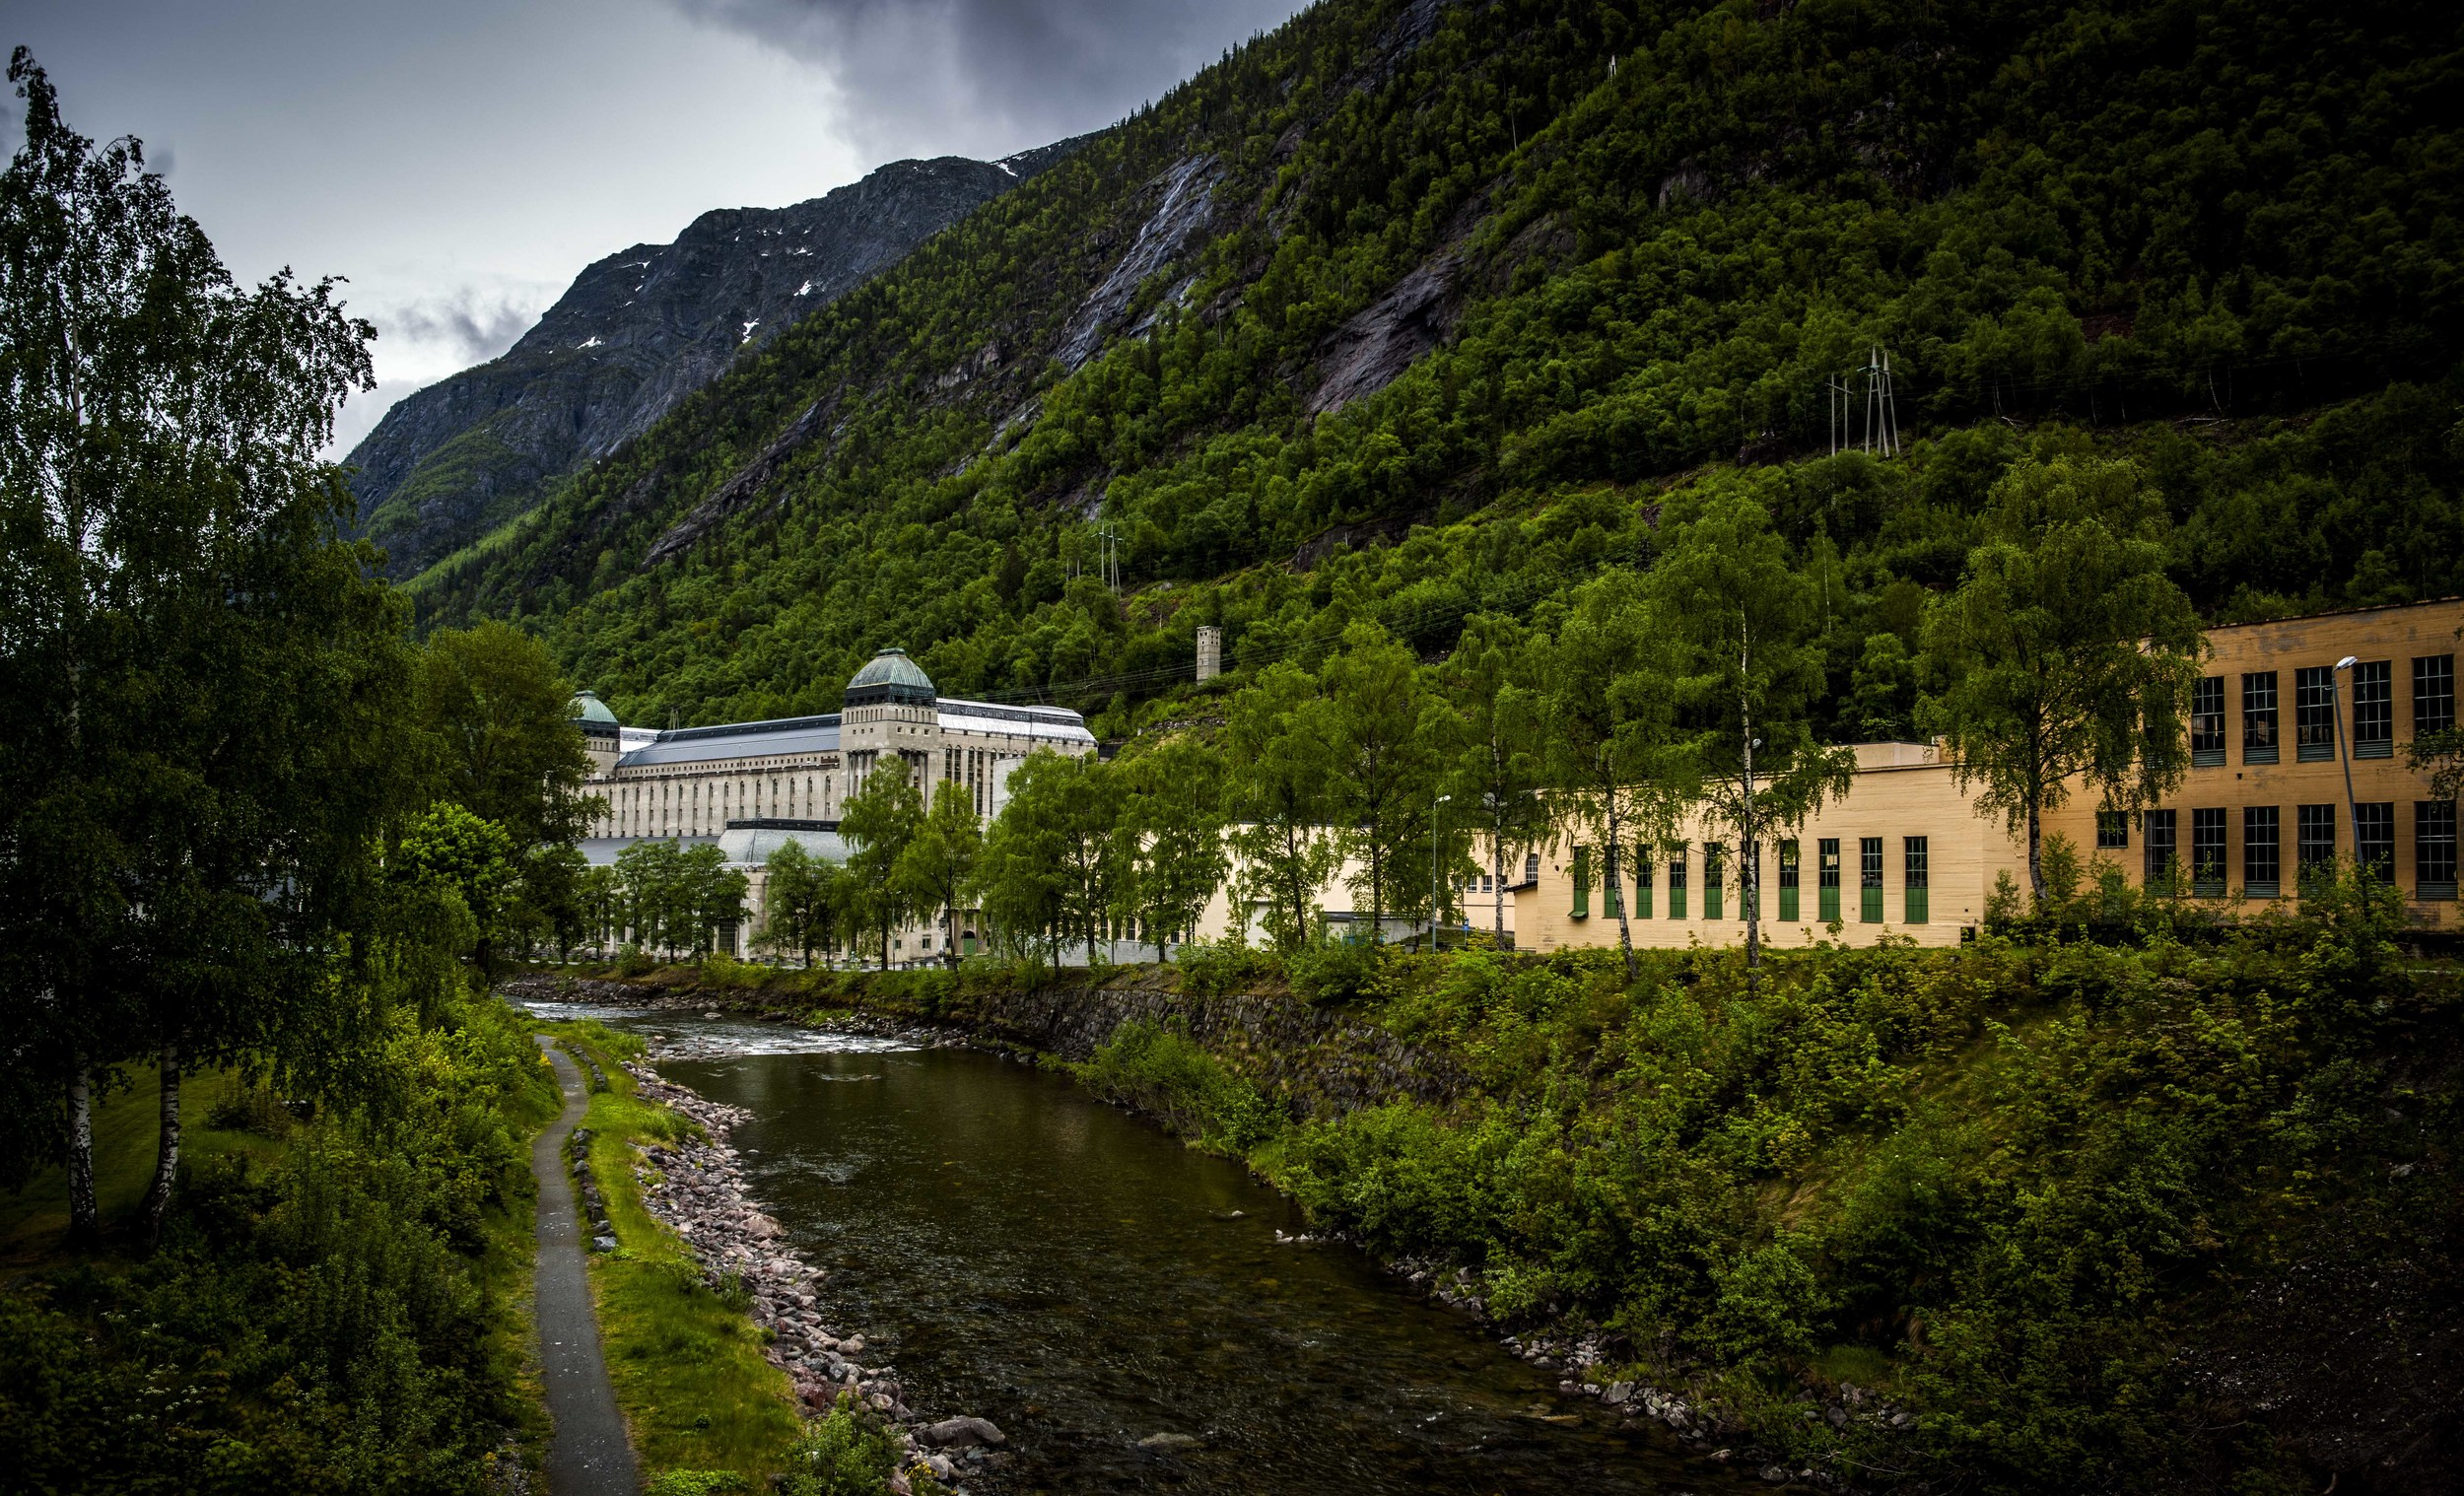 Saaheim power plant in Rjukan